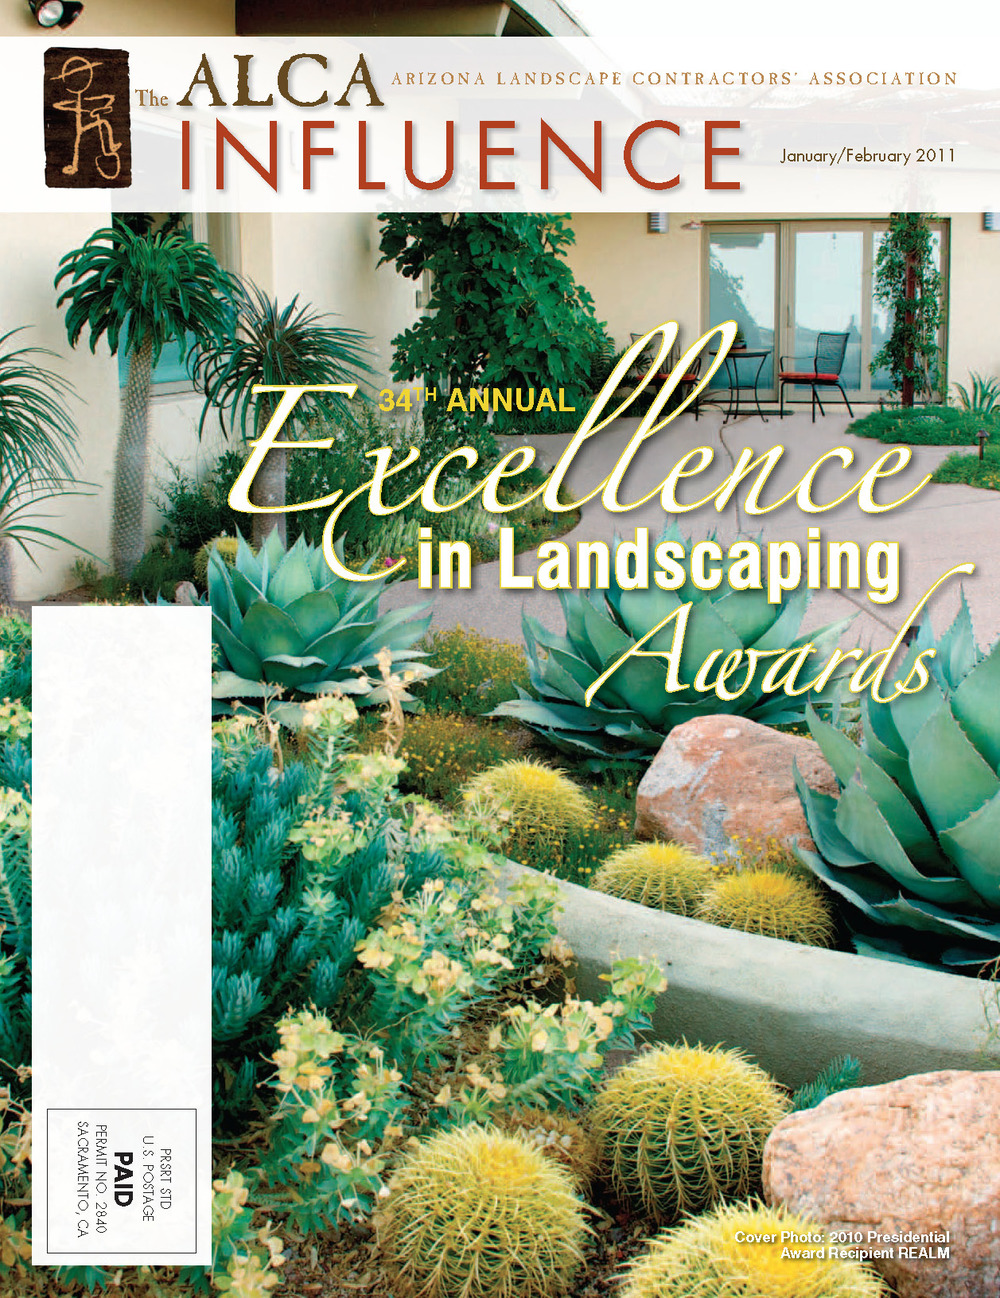 REALM in the ALCA Influence Magazine